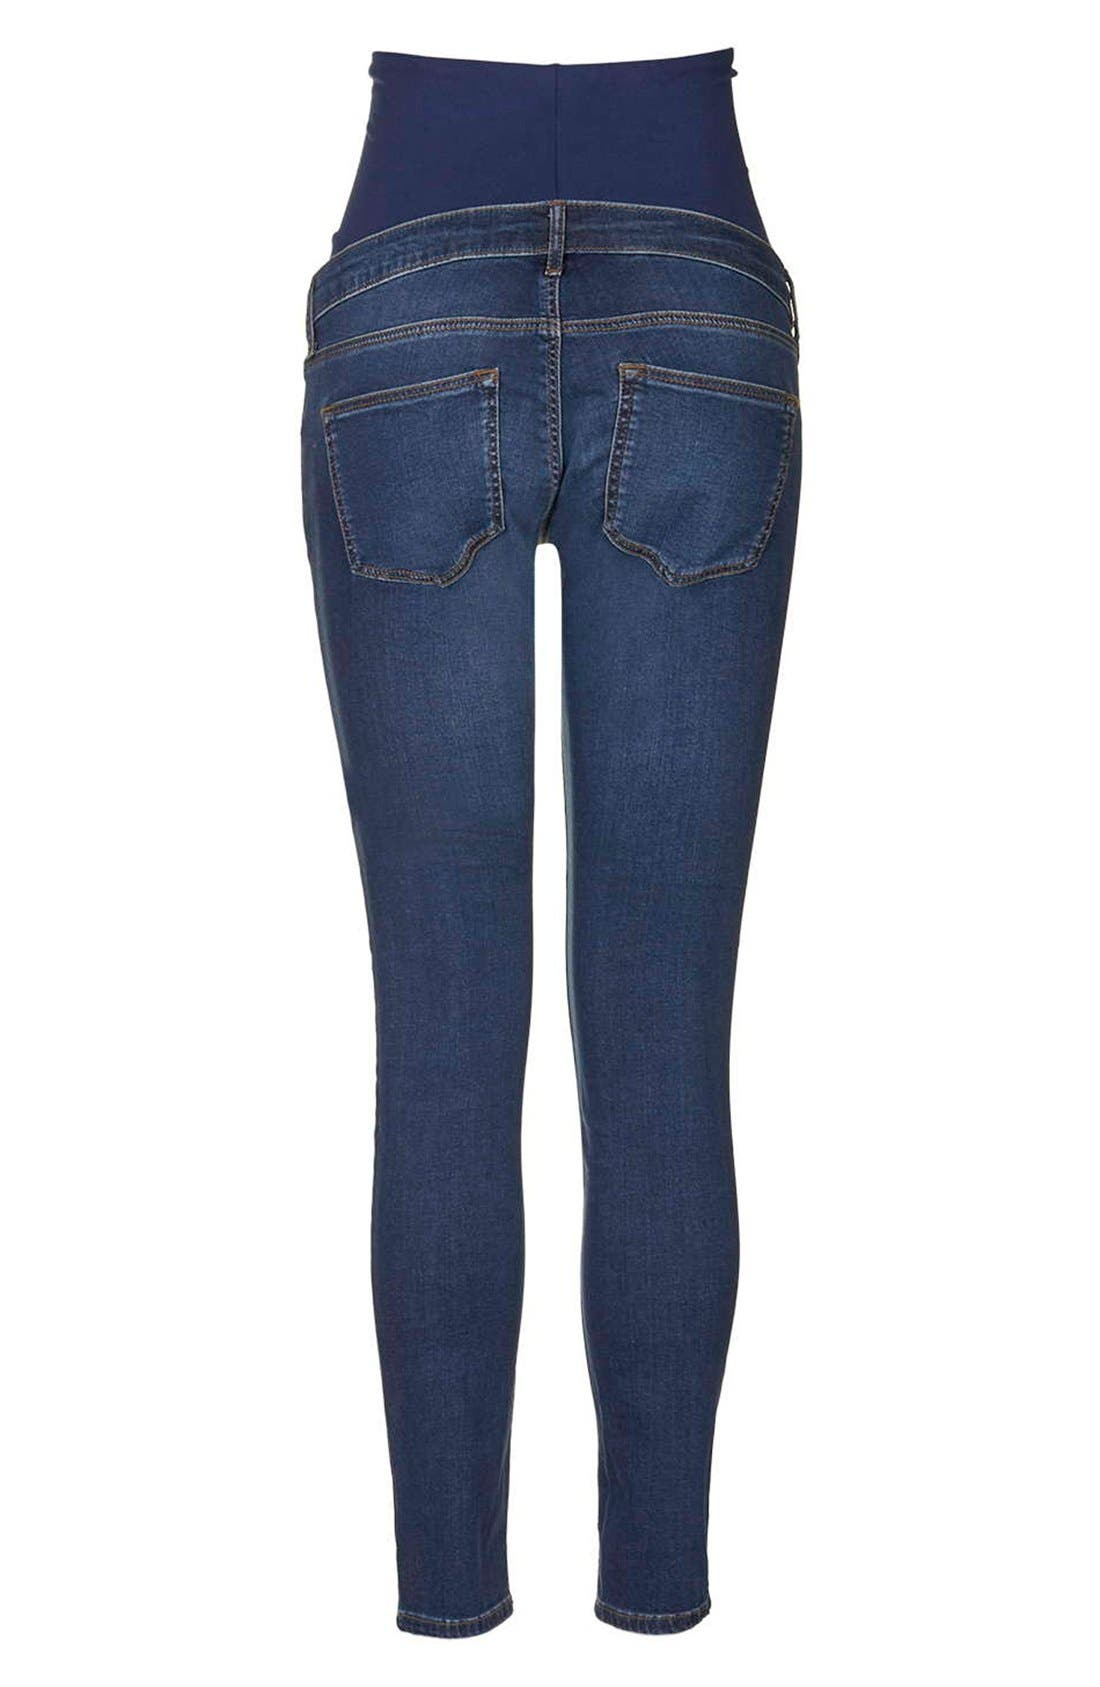 'Leigh' Skinny Maternity Jeans,                             Alternate thumbnail 2, color,                             Dark Denim